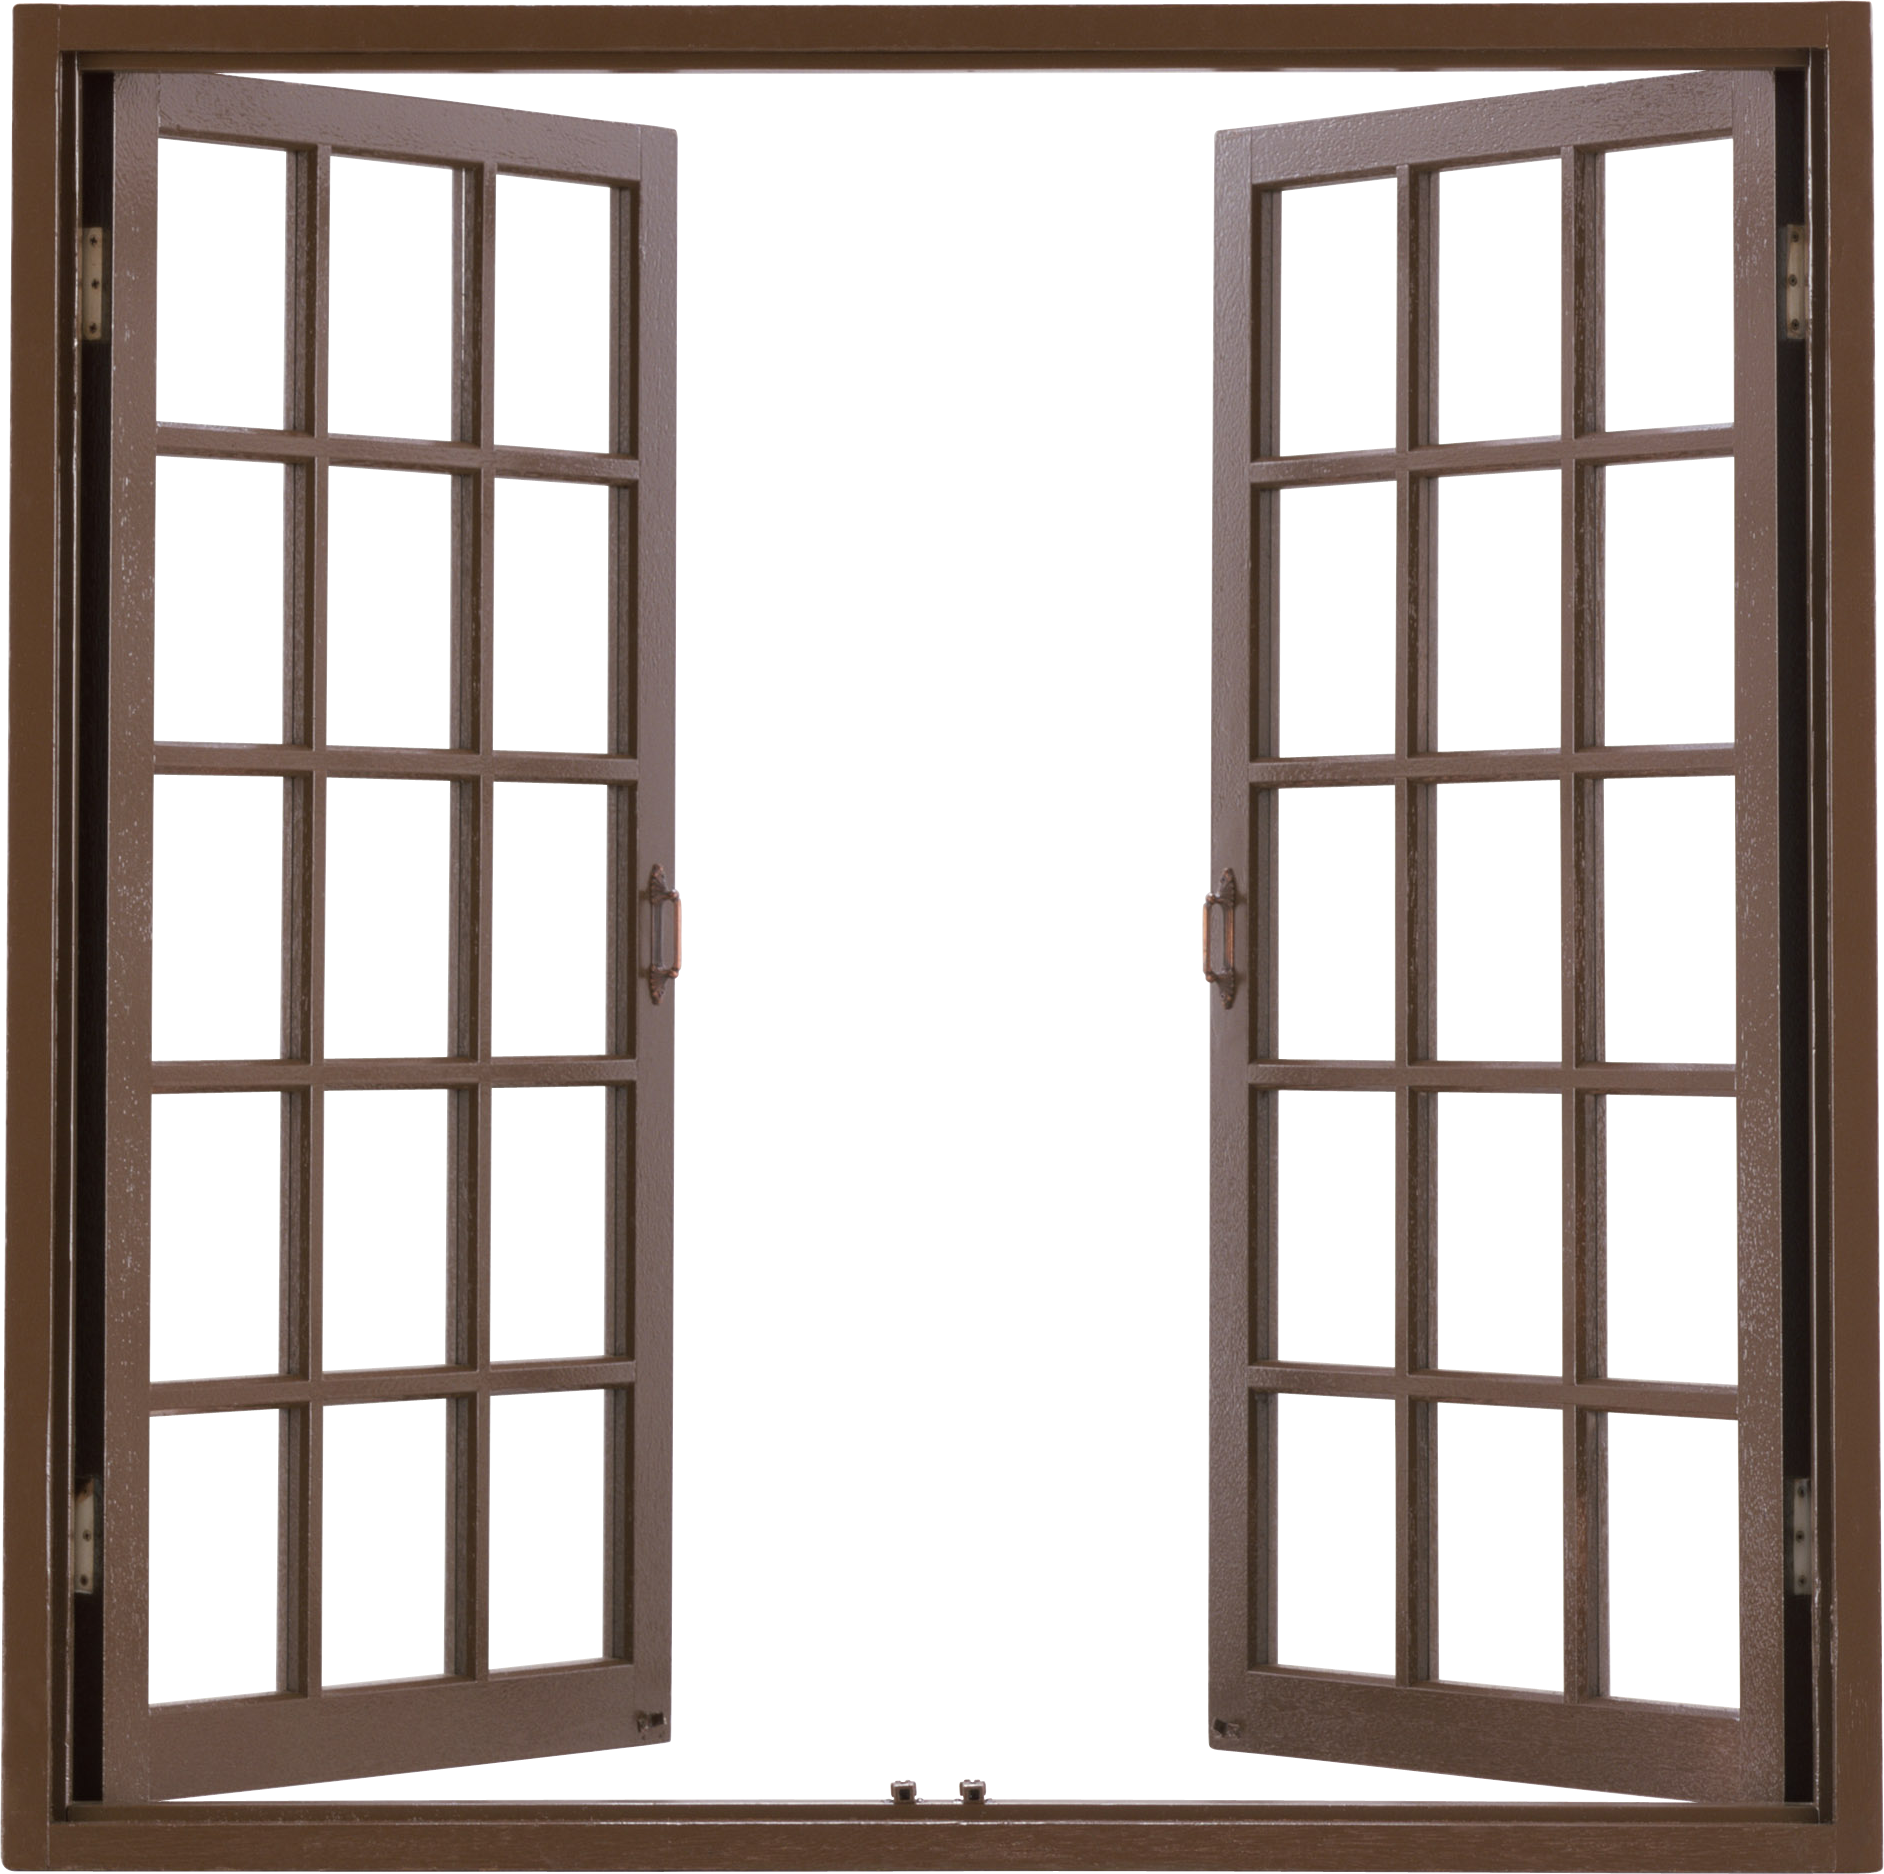 Window clipart png. Windows photos transparentpng image